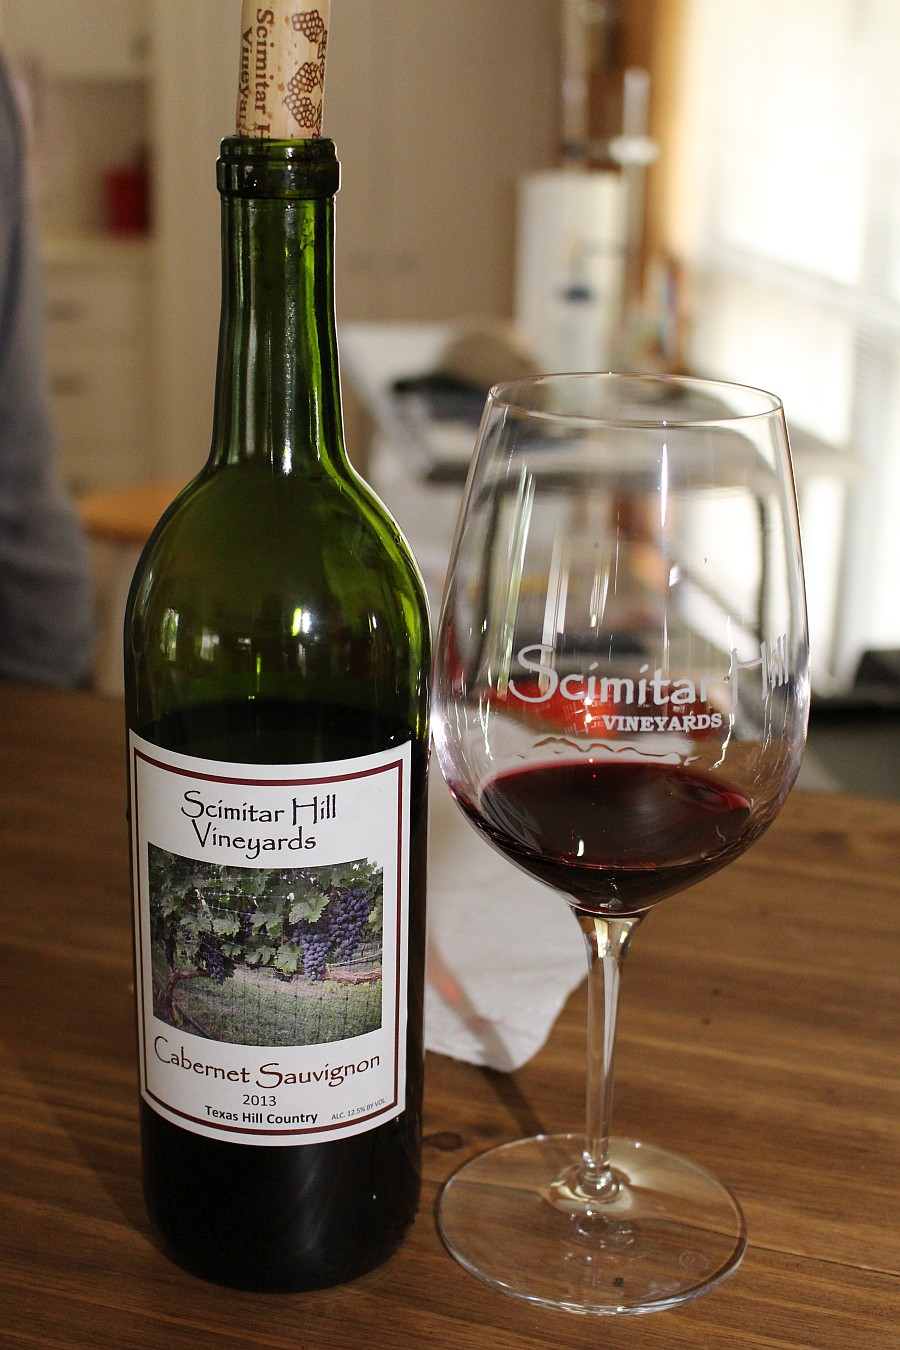 Scimitar Hill Vineyards Cabernet Sauvignon